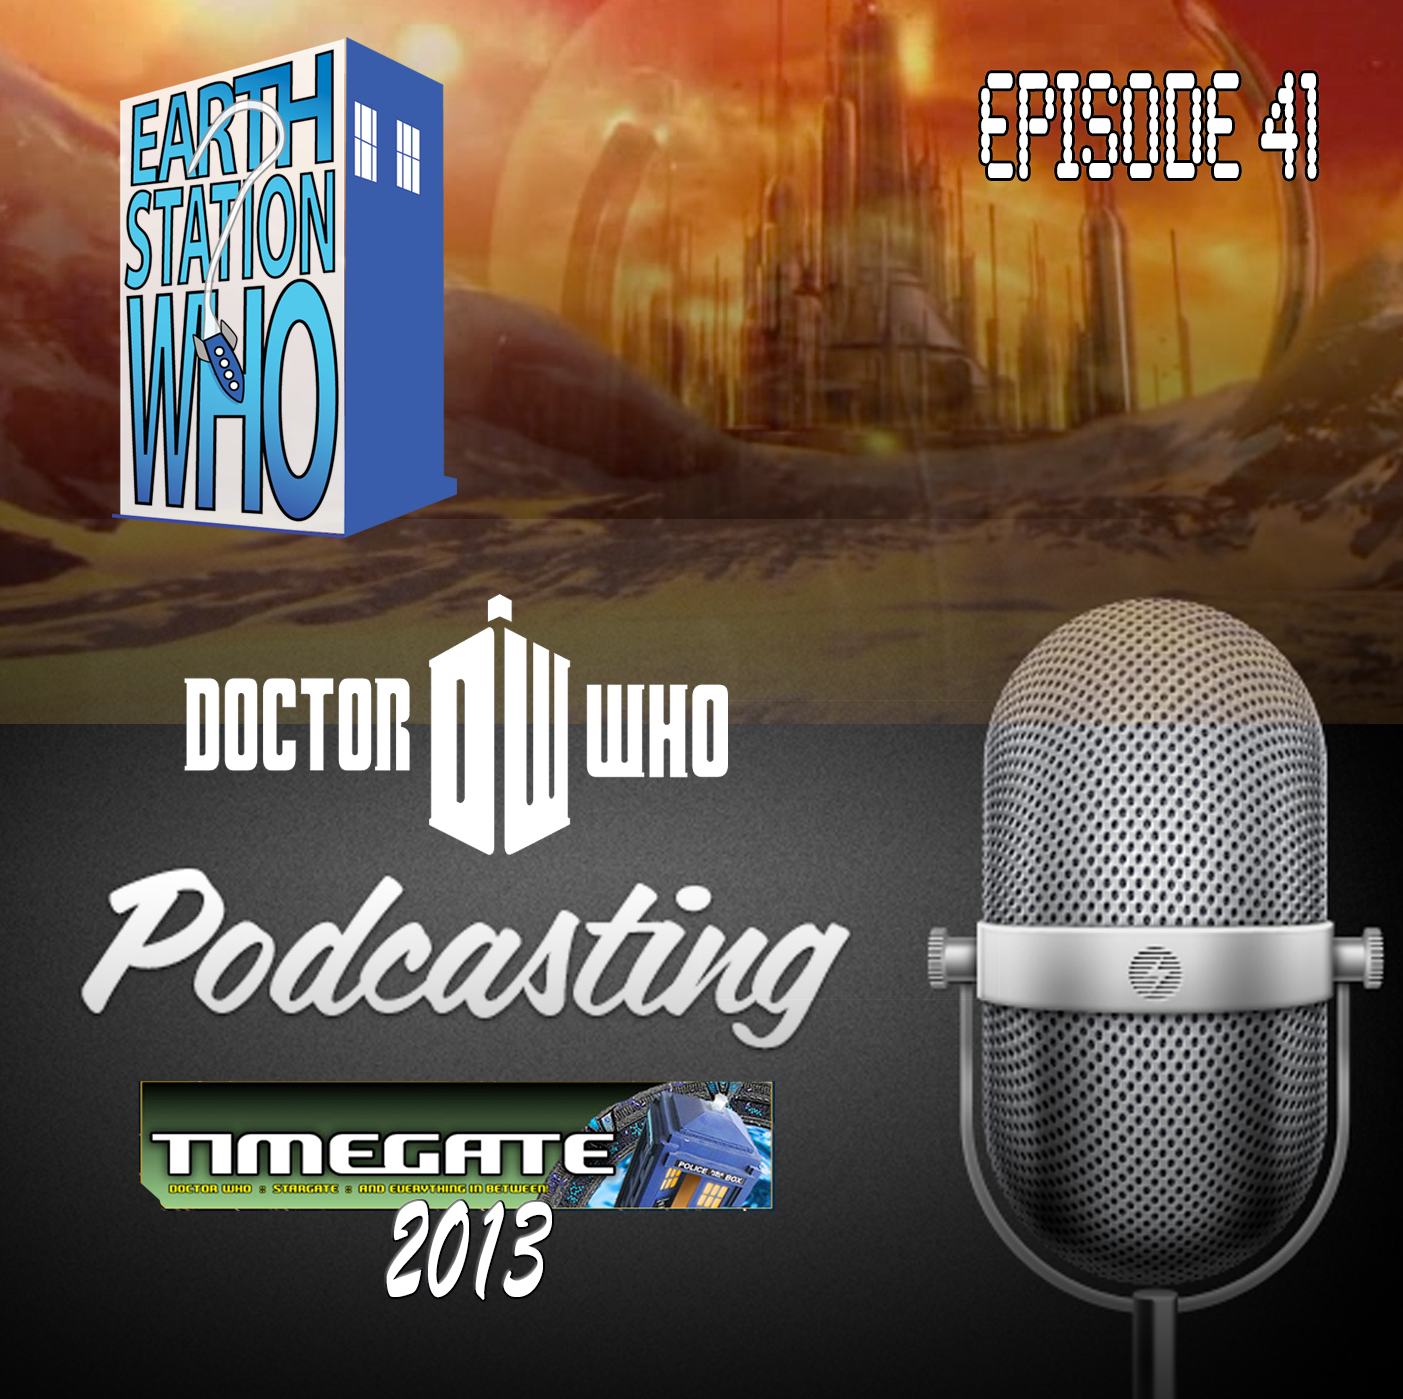 ESW Episode 41 - Time Gate Podcast Panel 2013